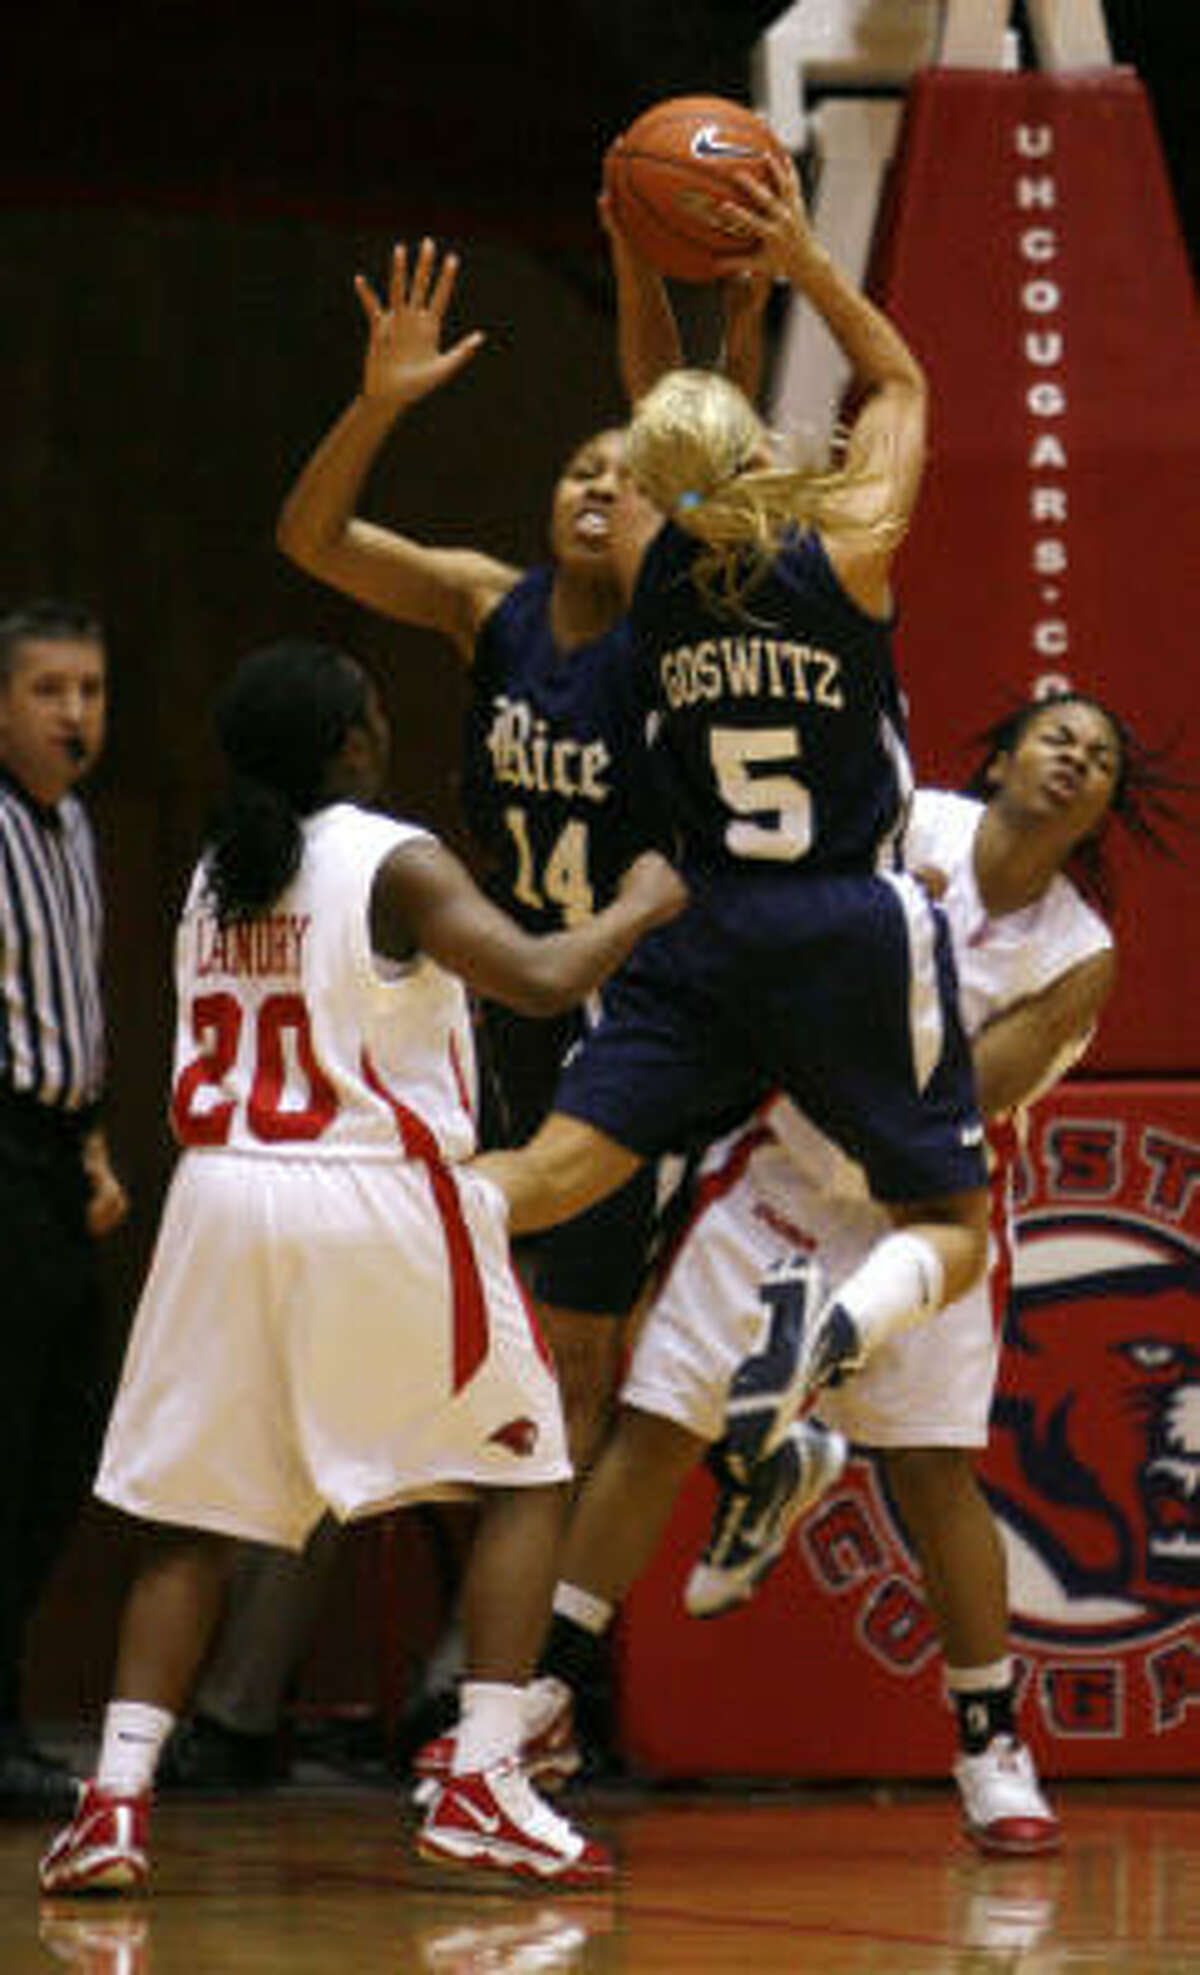 Rice's Jessica Goswitz (5) goes up for the basket over Houston's Brittney Scott, right, as Houston's Porsche Landry (20) watches.